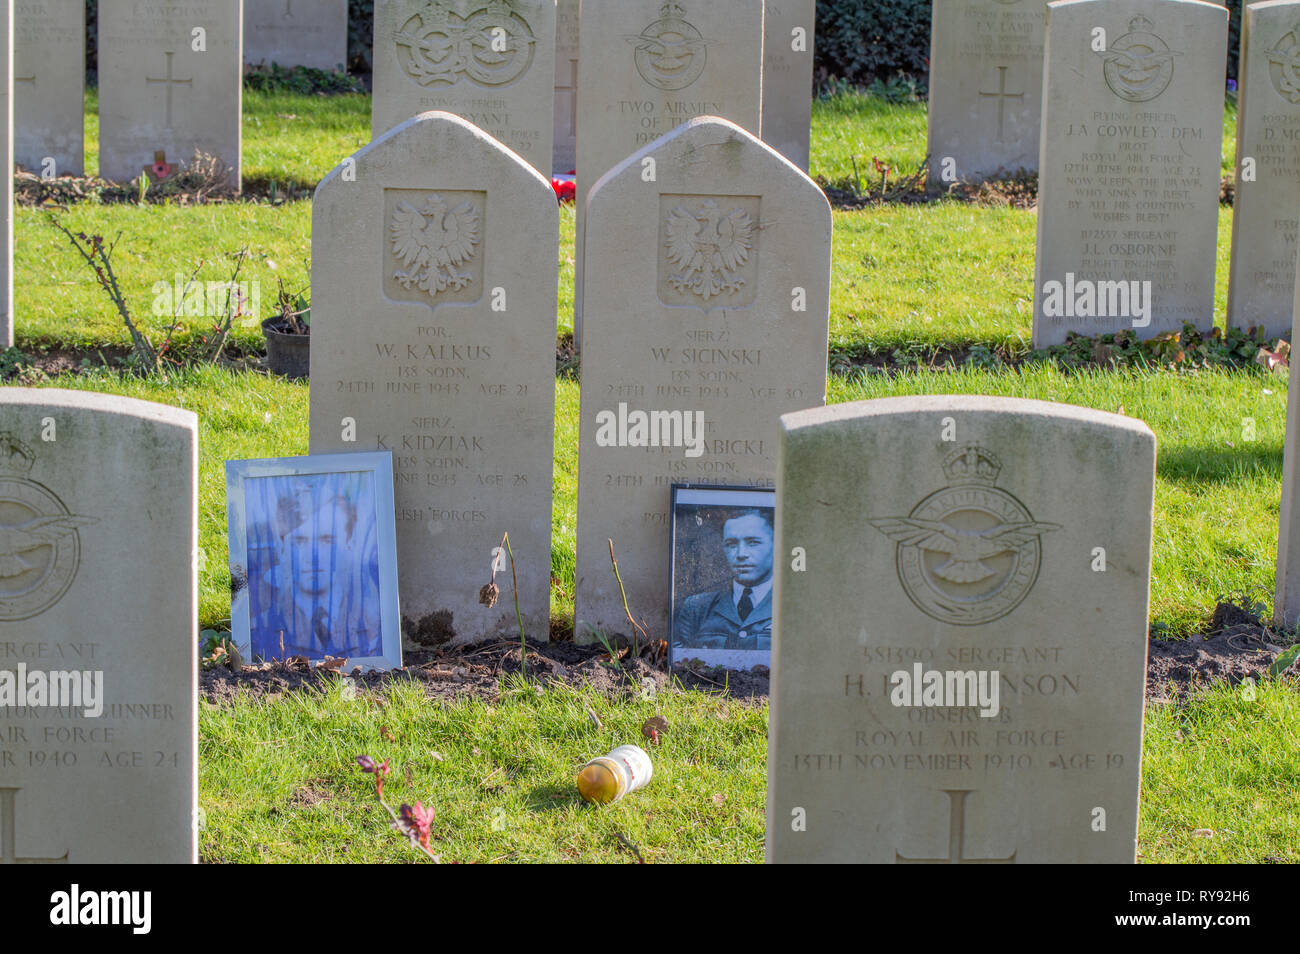 Photos At The Military Graveyard At The Nieuwe Ooster Amsterdam The Netherlands 2019 - Stock Image